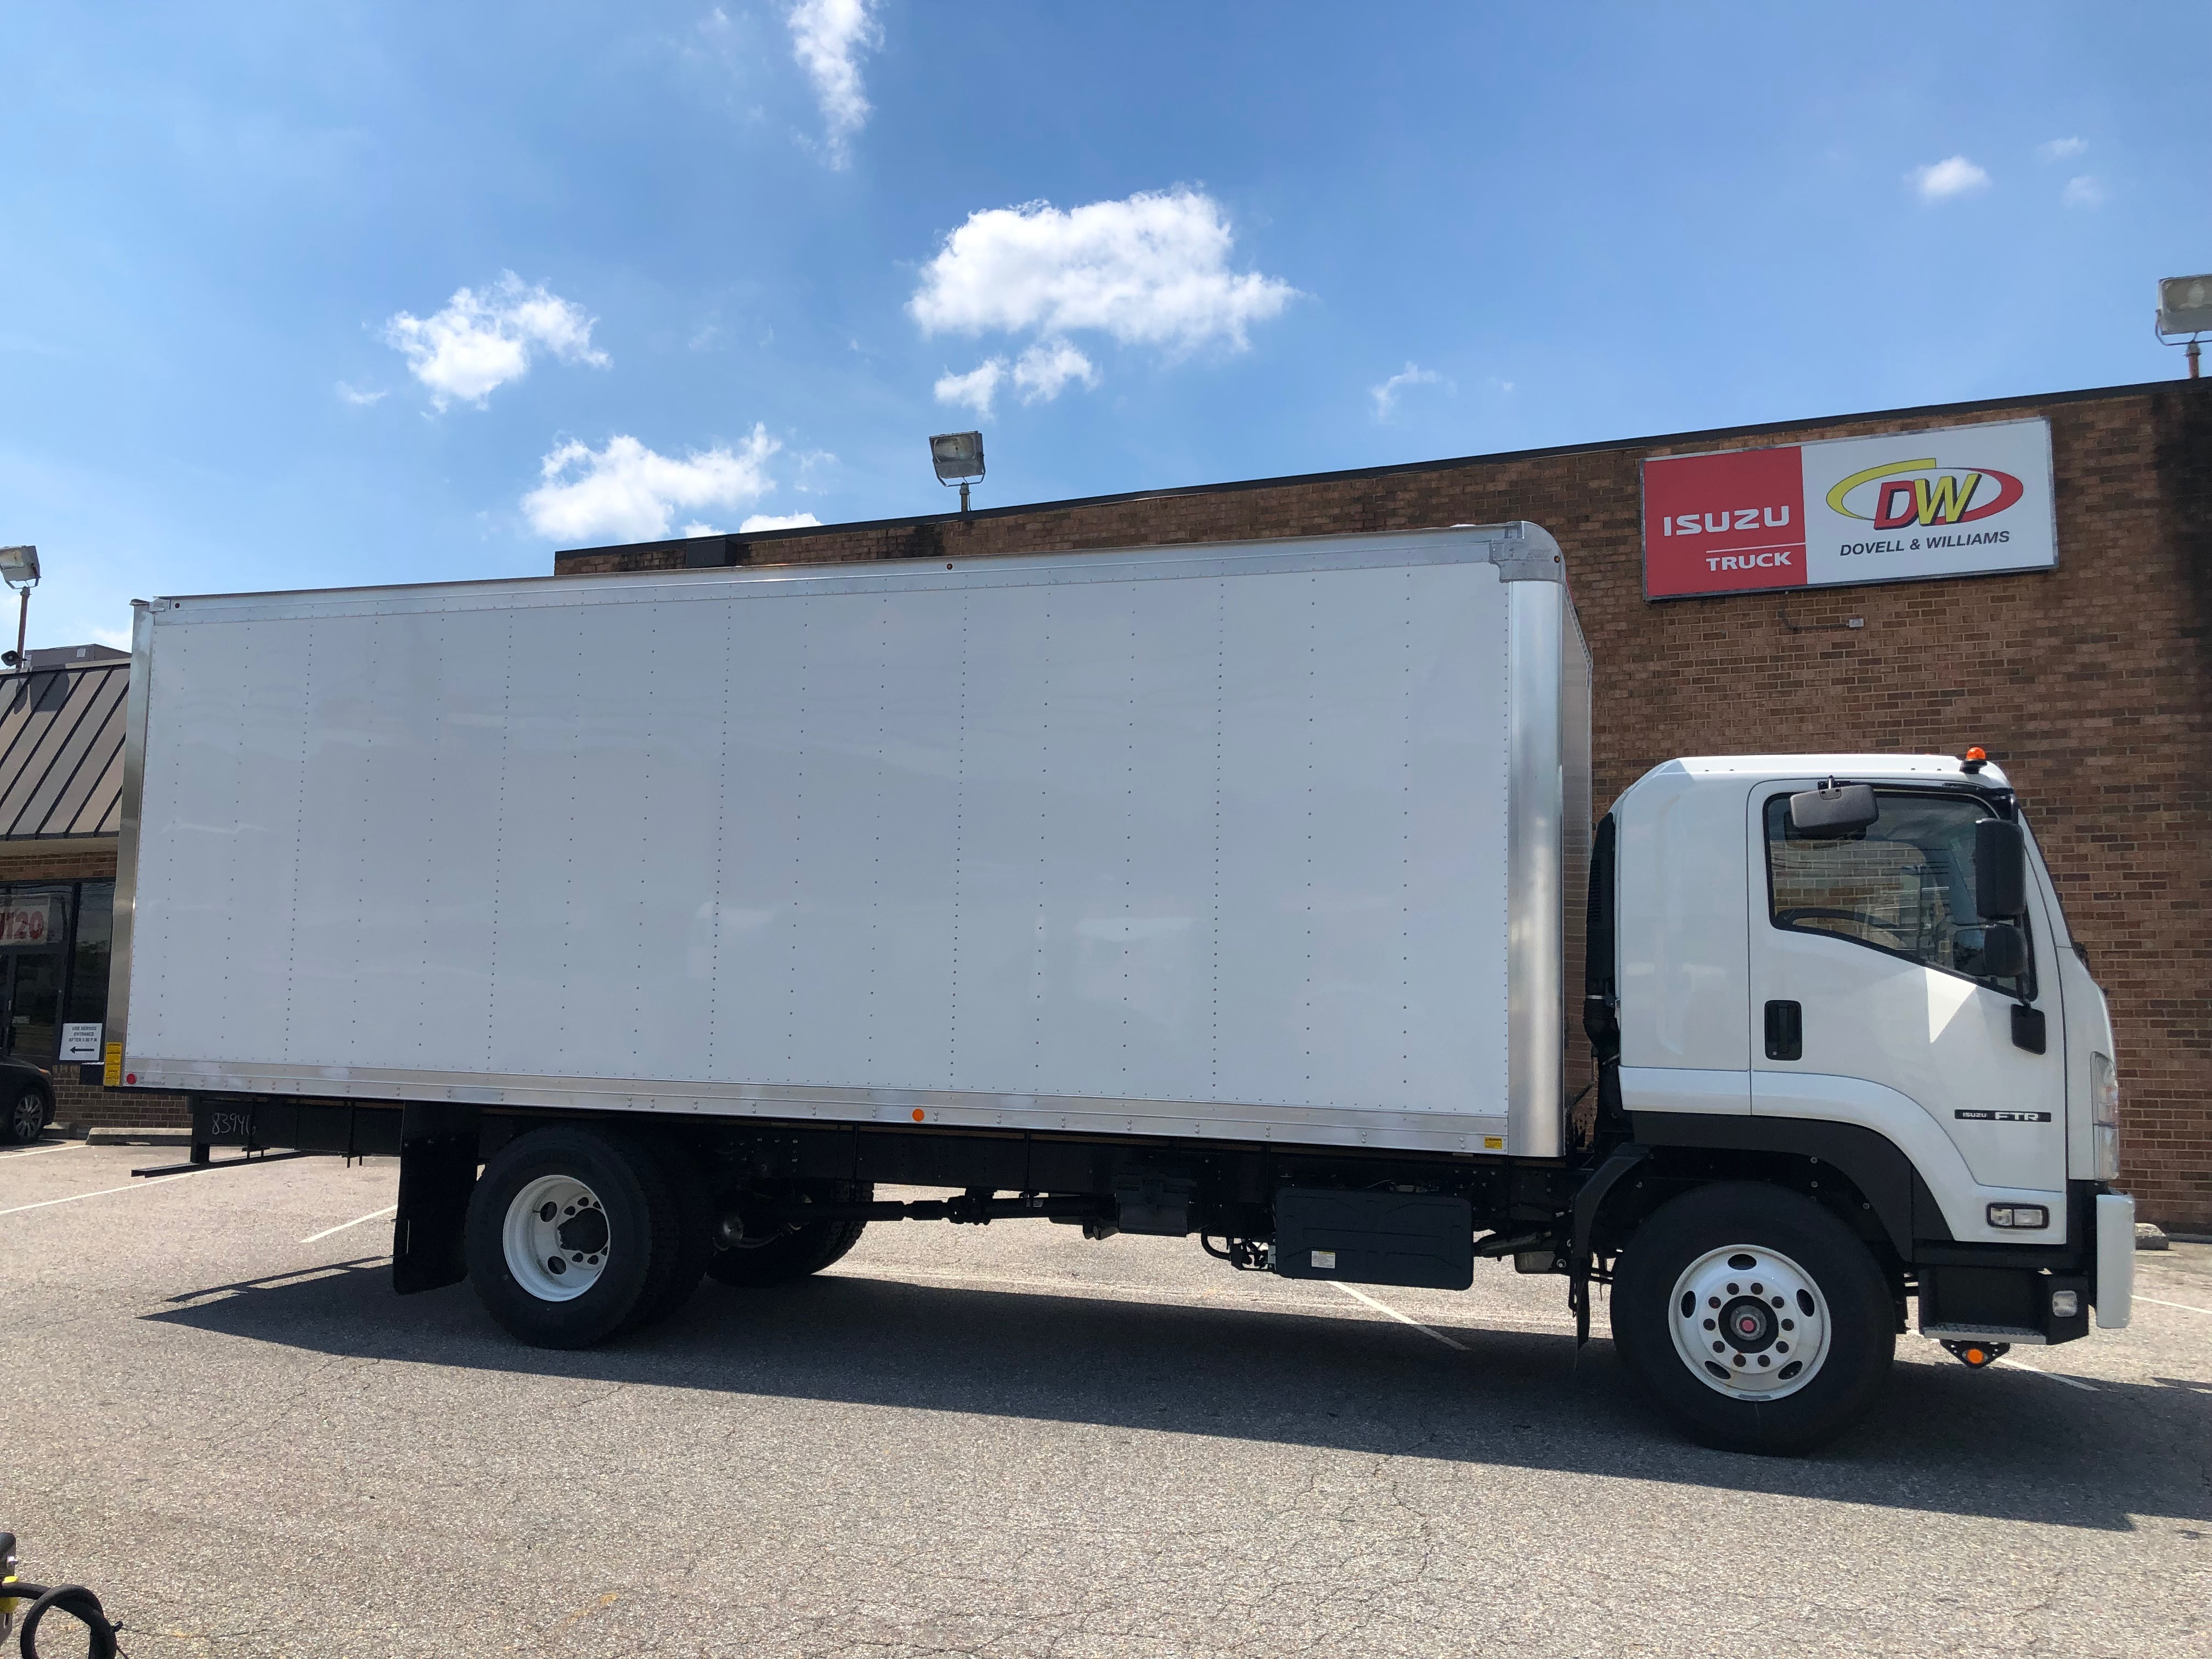 """2018 Isuzu FTR with a 24' Mickey Body and 212"""" Wheelbase, 3 Year Untimited mile Warranty, 3 Year 24hr roadside Assistance, IMG-8052-762x456"""